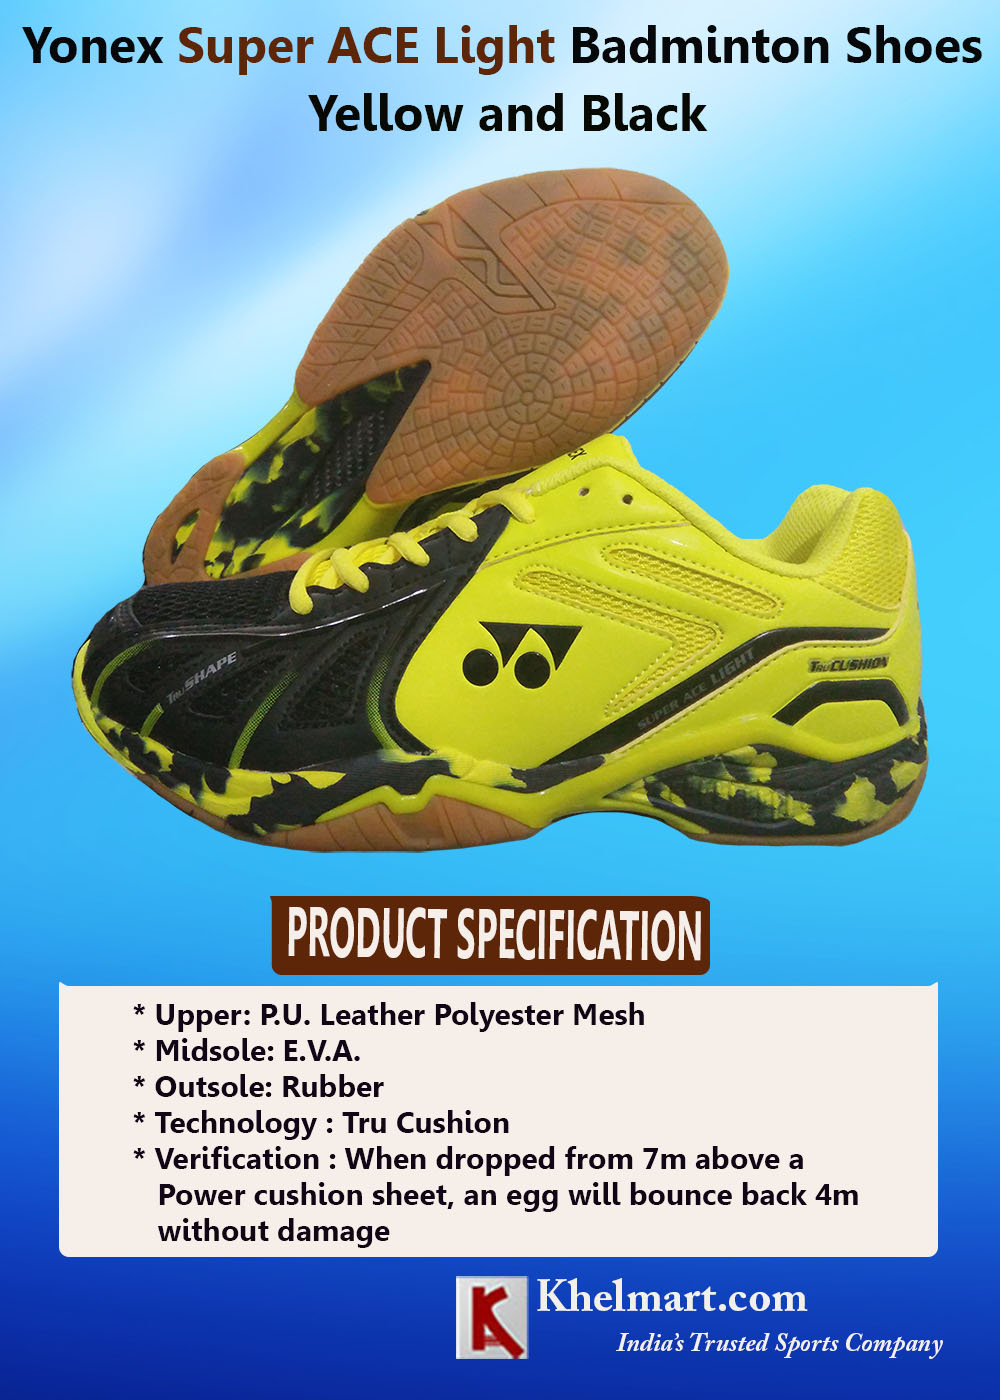 Yonex Super ACE Light Badminton Shoes Yellow and Black